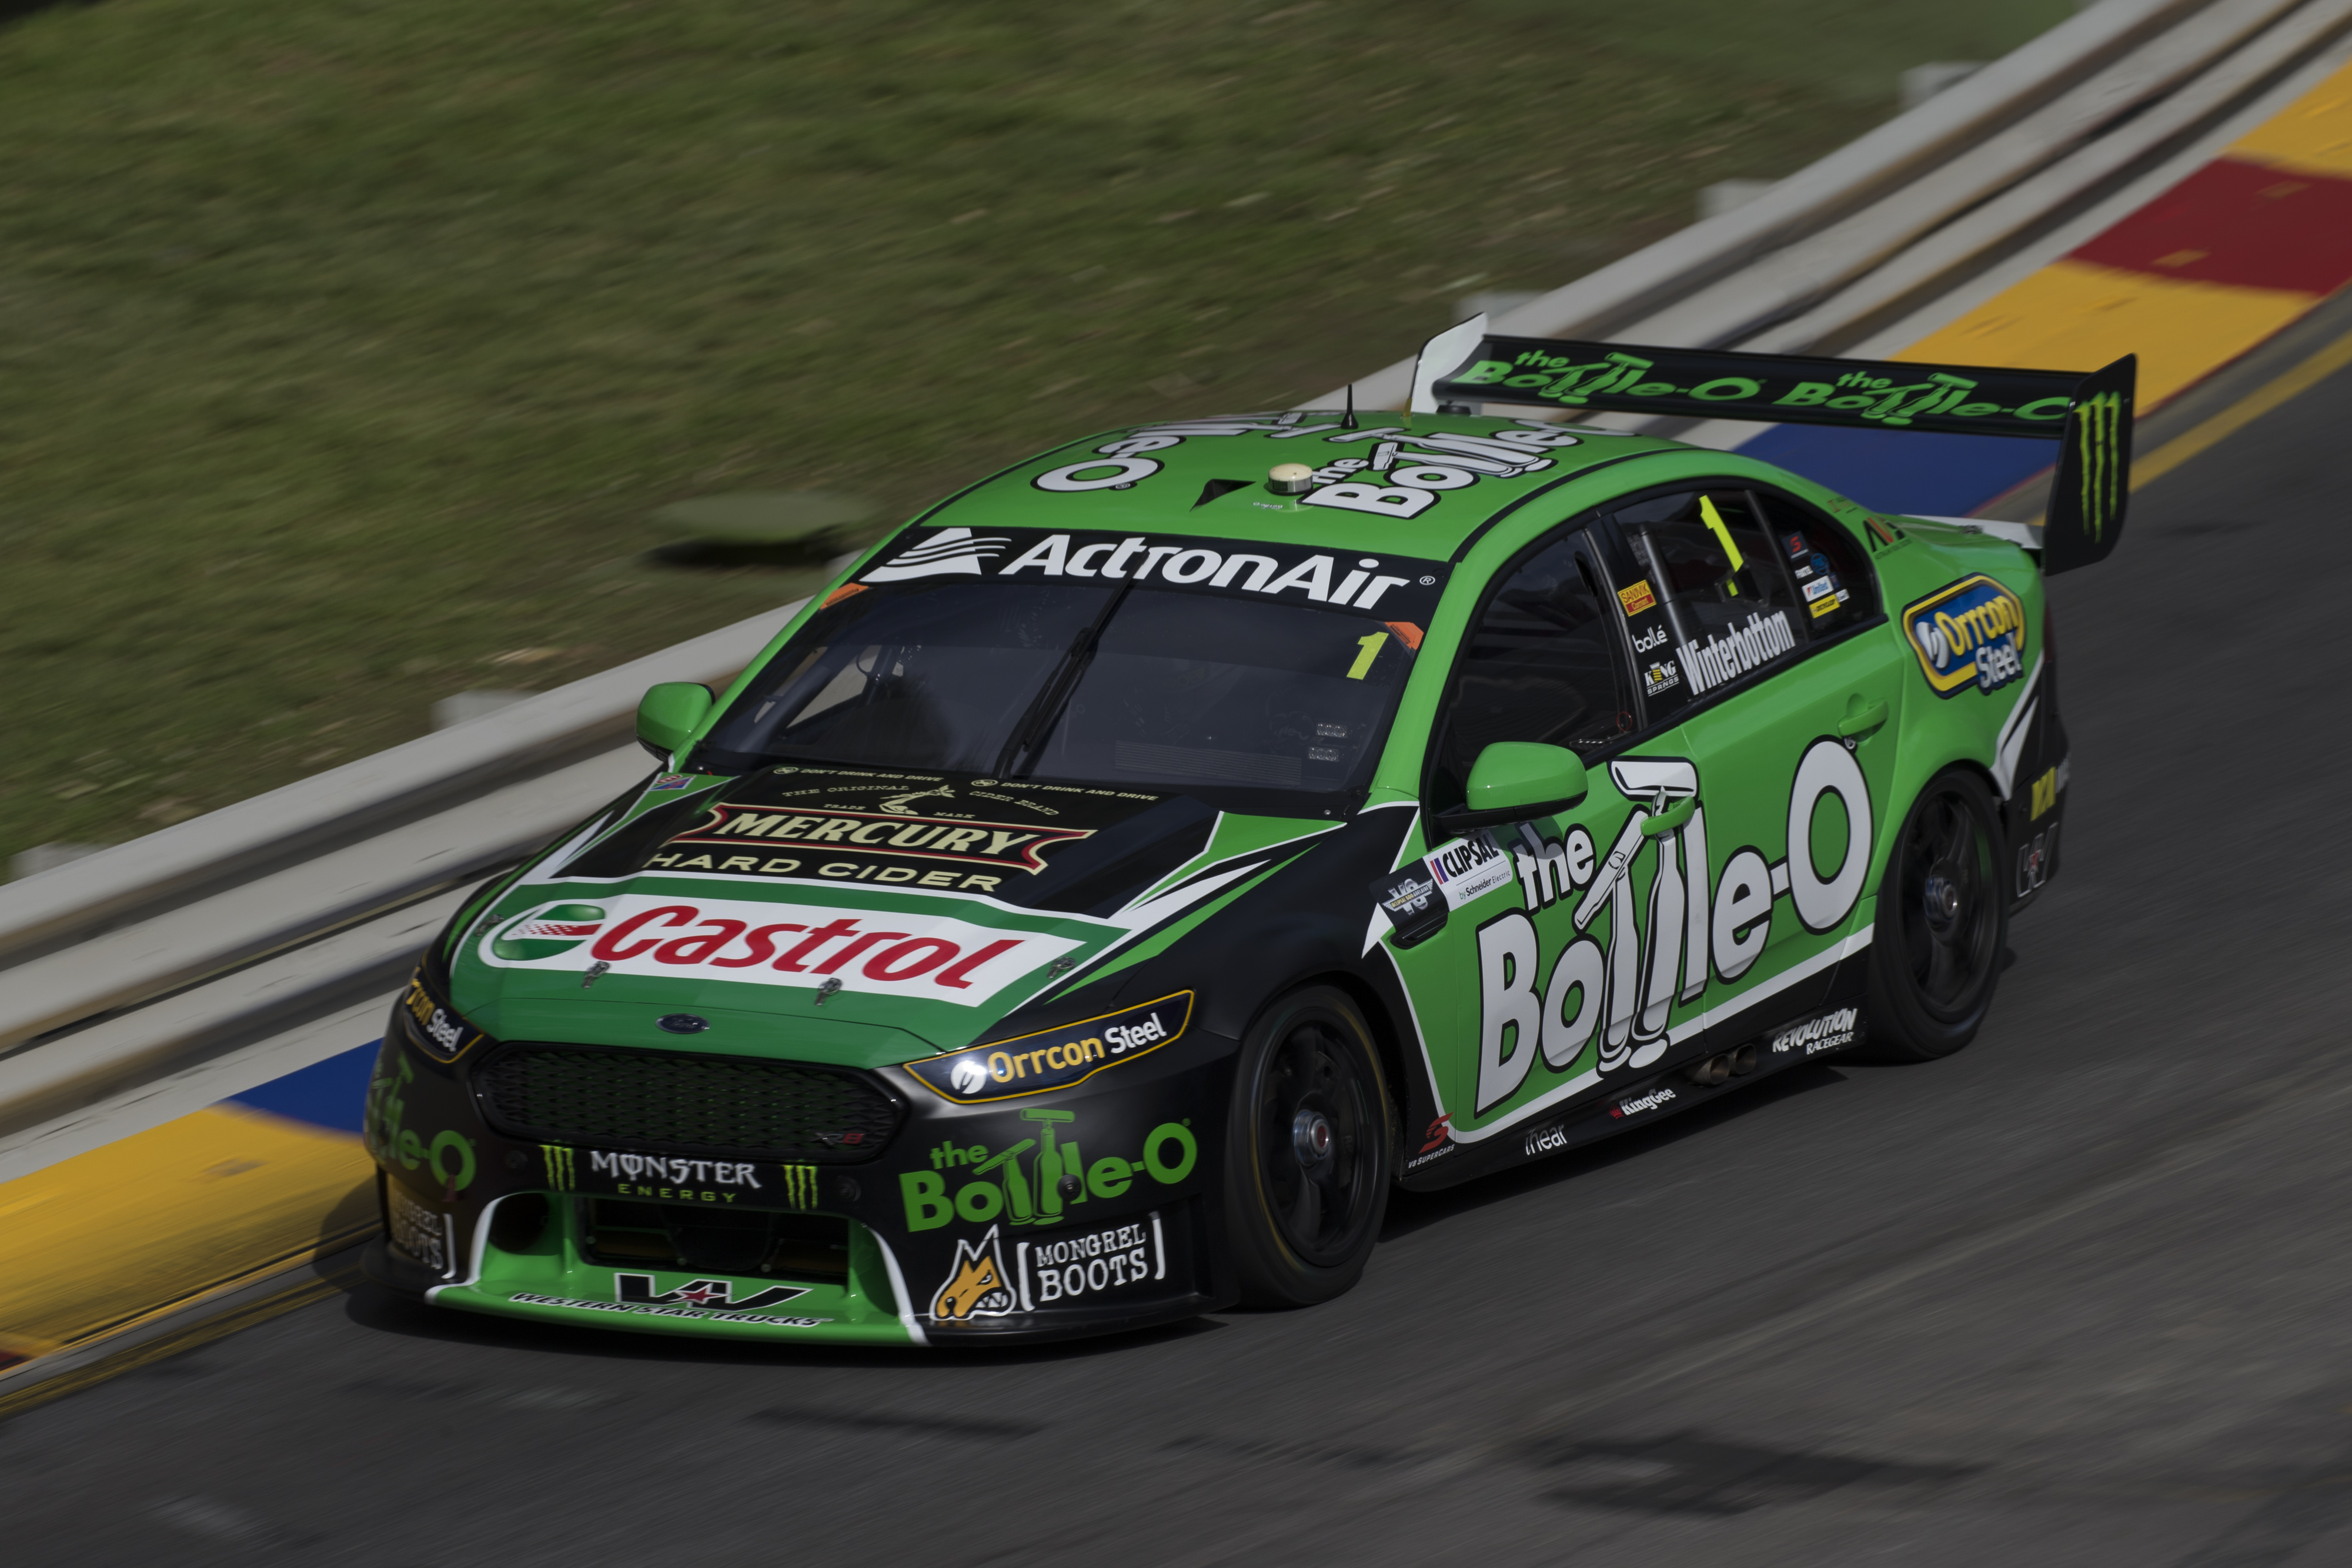 Mark Winterbottom of Prodrive Racing Australia during the Clipsal 500,  at the Adelaide Street Circuit, Adelaide, South Australia, March 04, 2016.